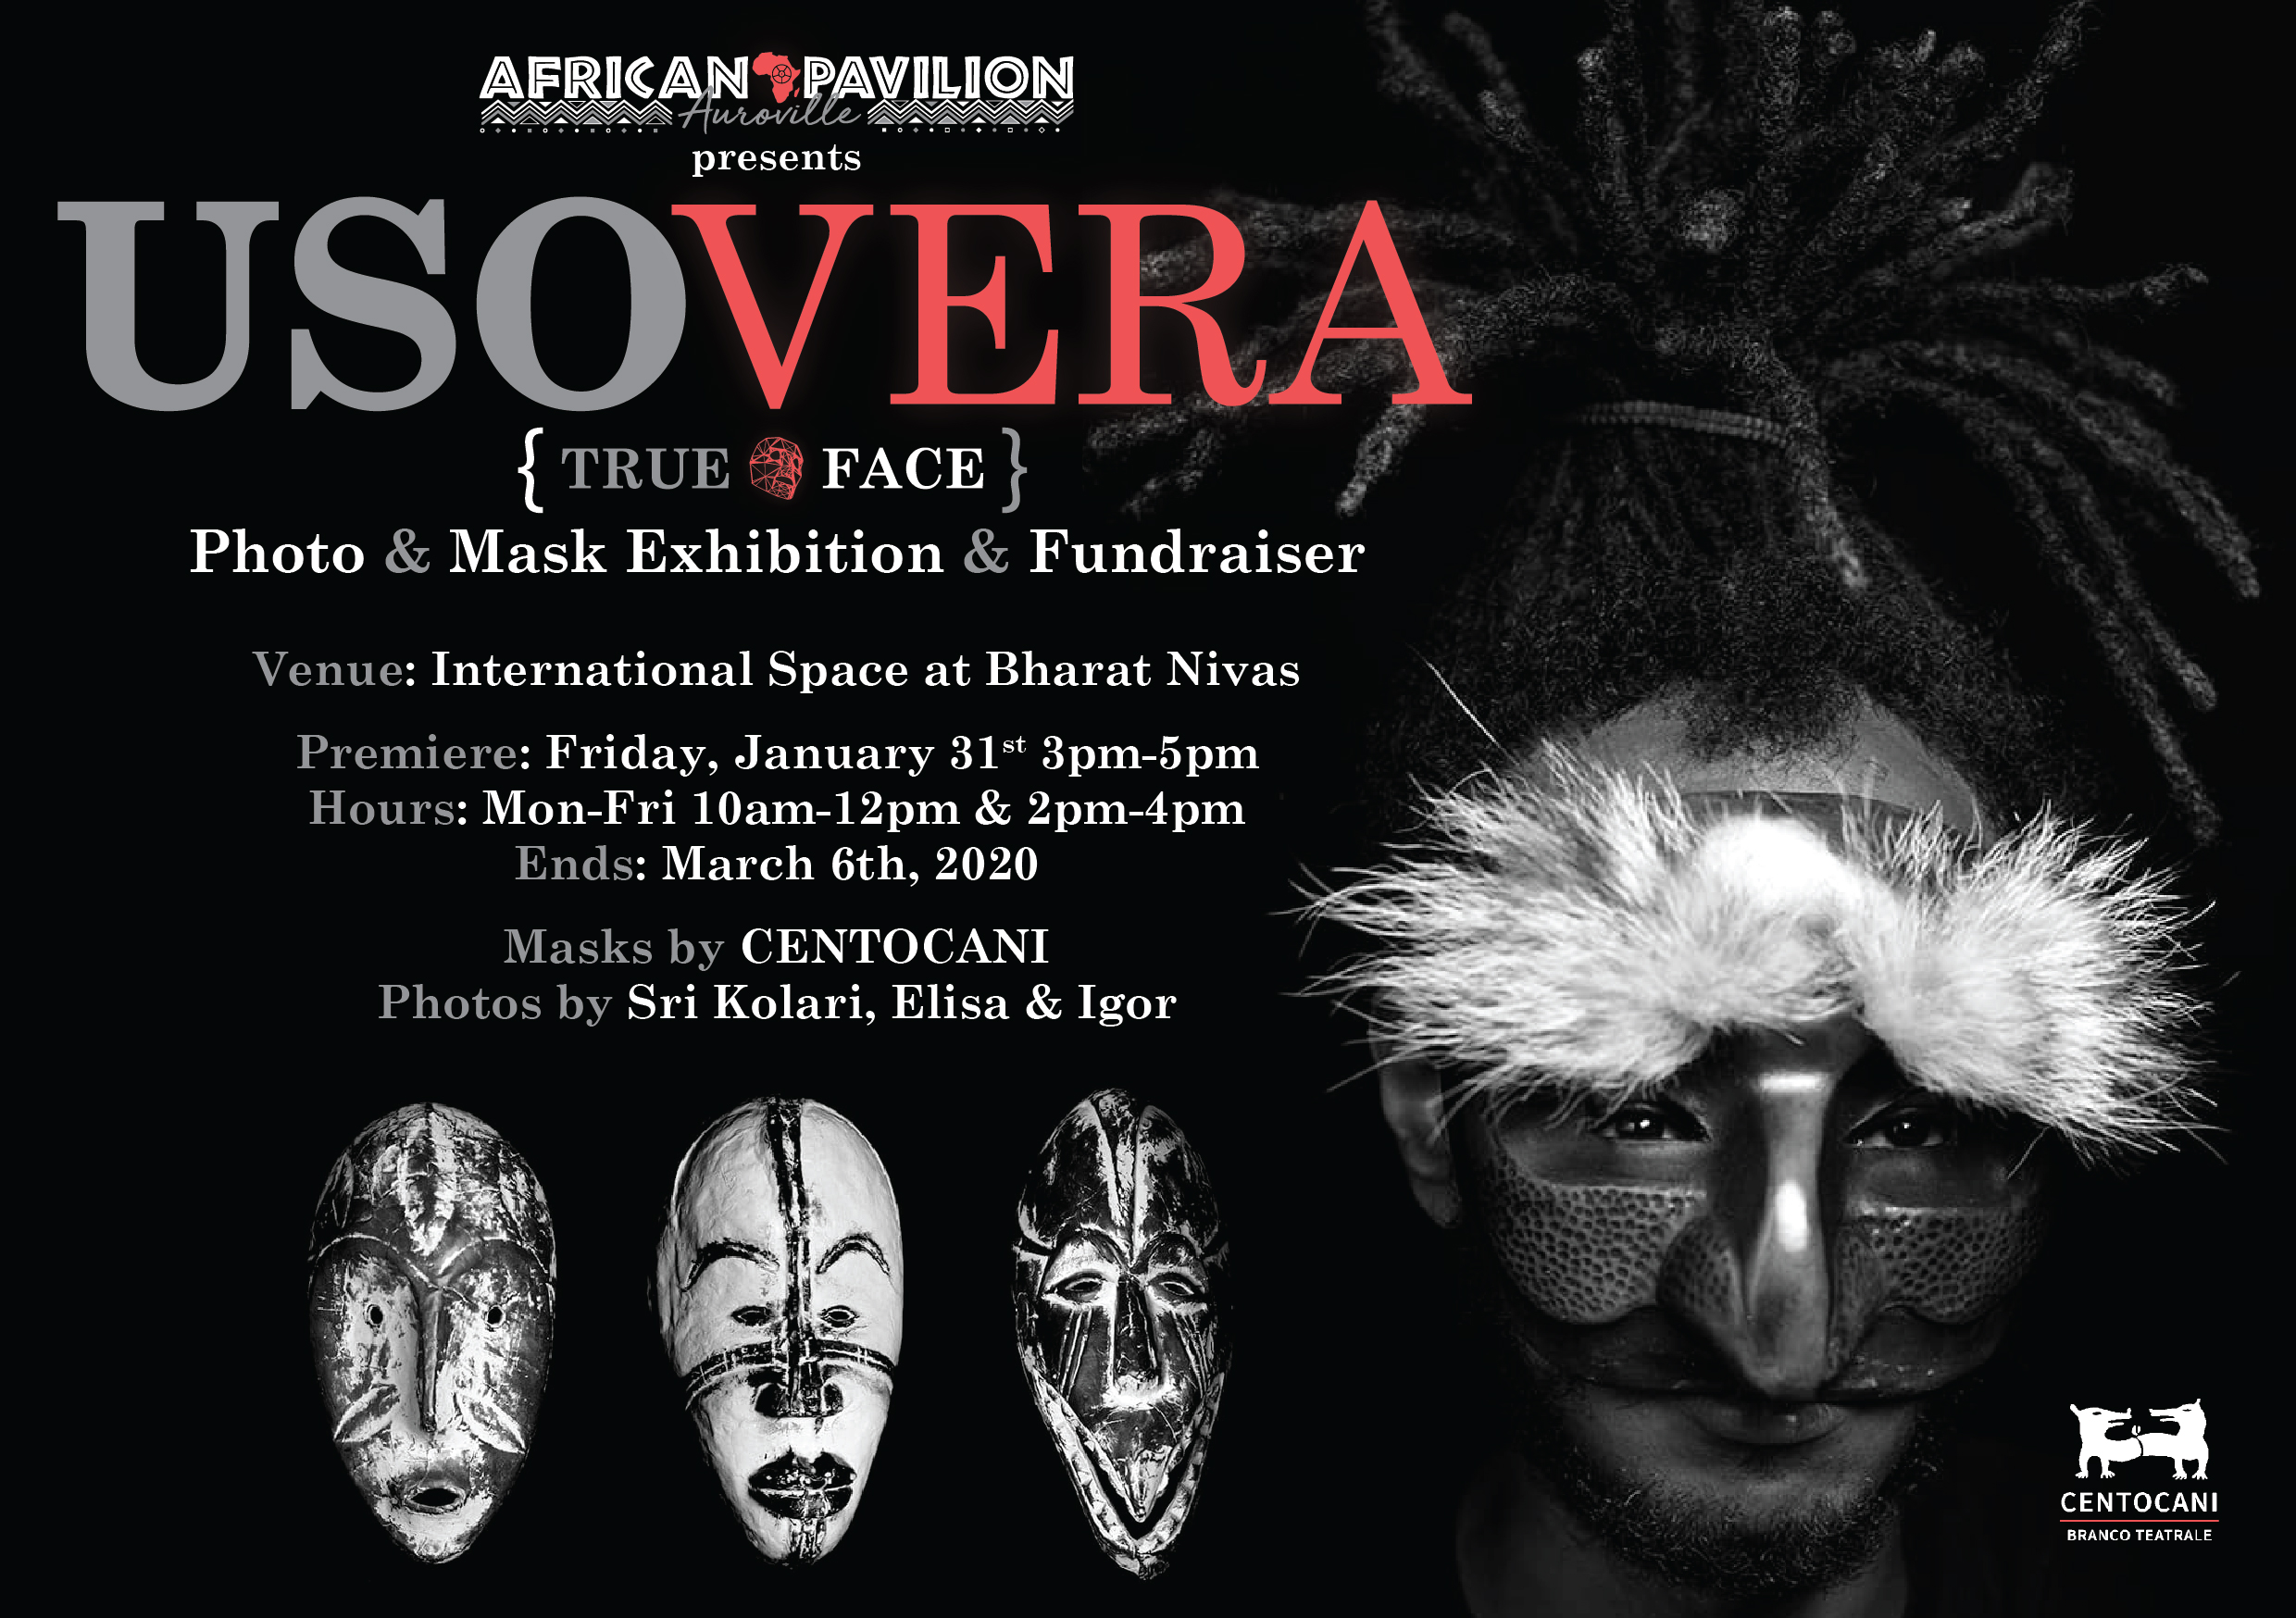 African Pavilion Auroville is holding a Photo & Mask Exhibition